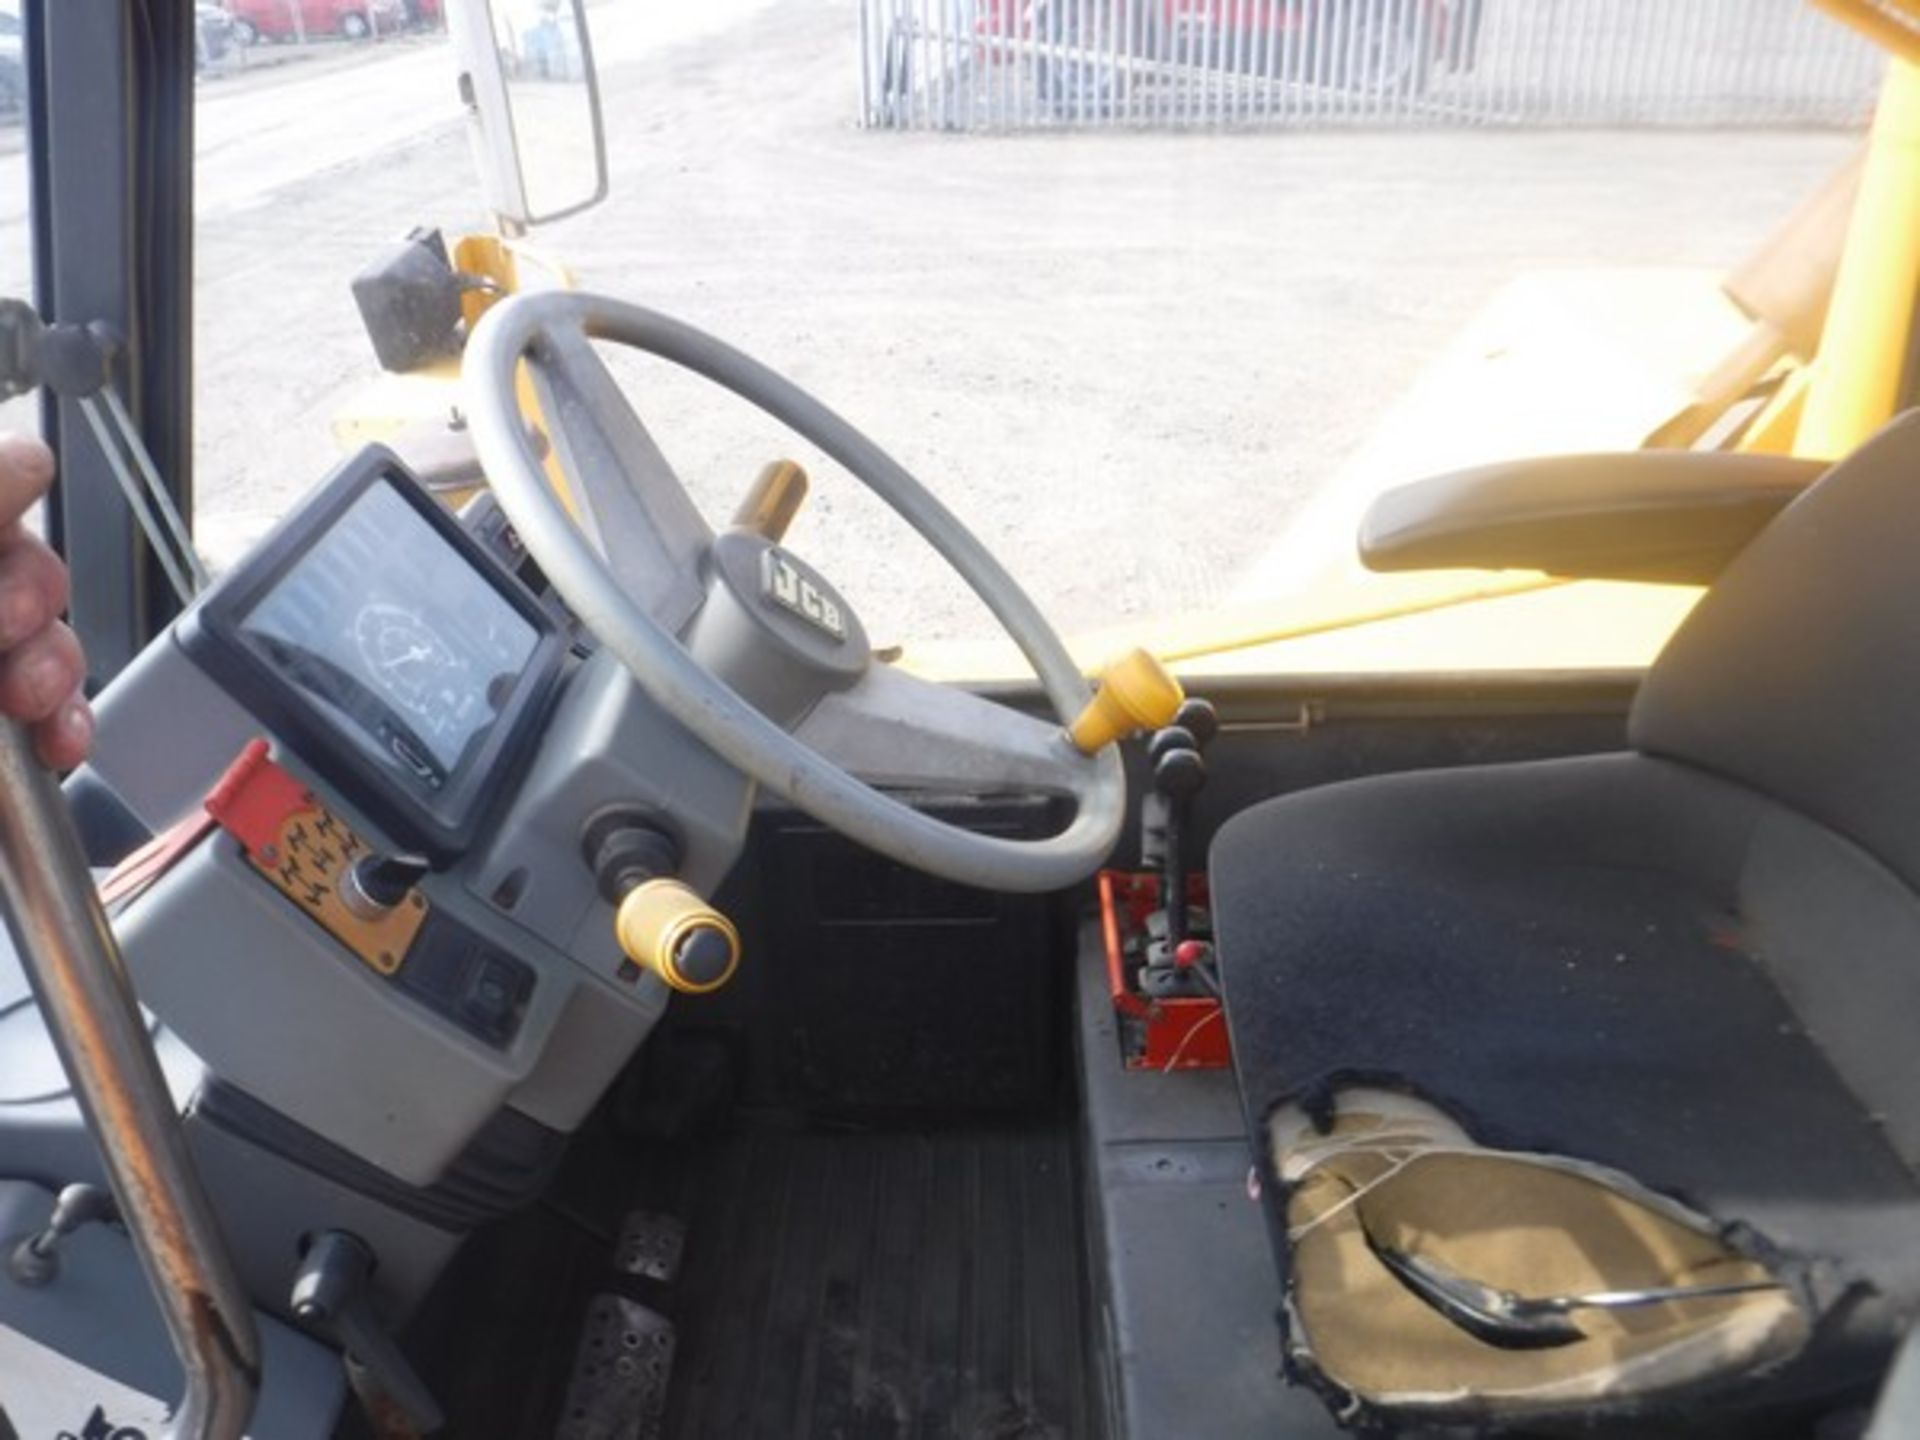 Auktionslos 816 - JCB 525-67 loadal. 6948hrs not verified) c/w pallet forks (not verified) S/N 609462X